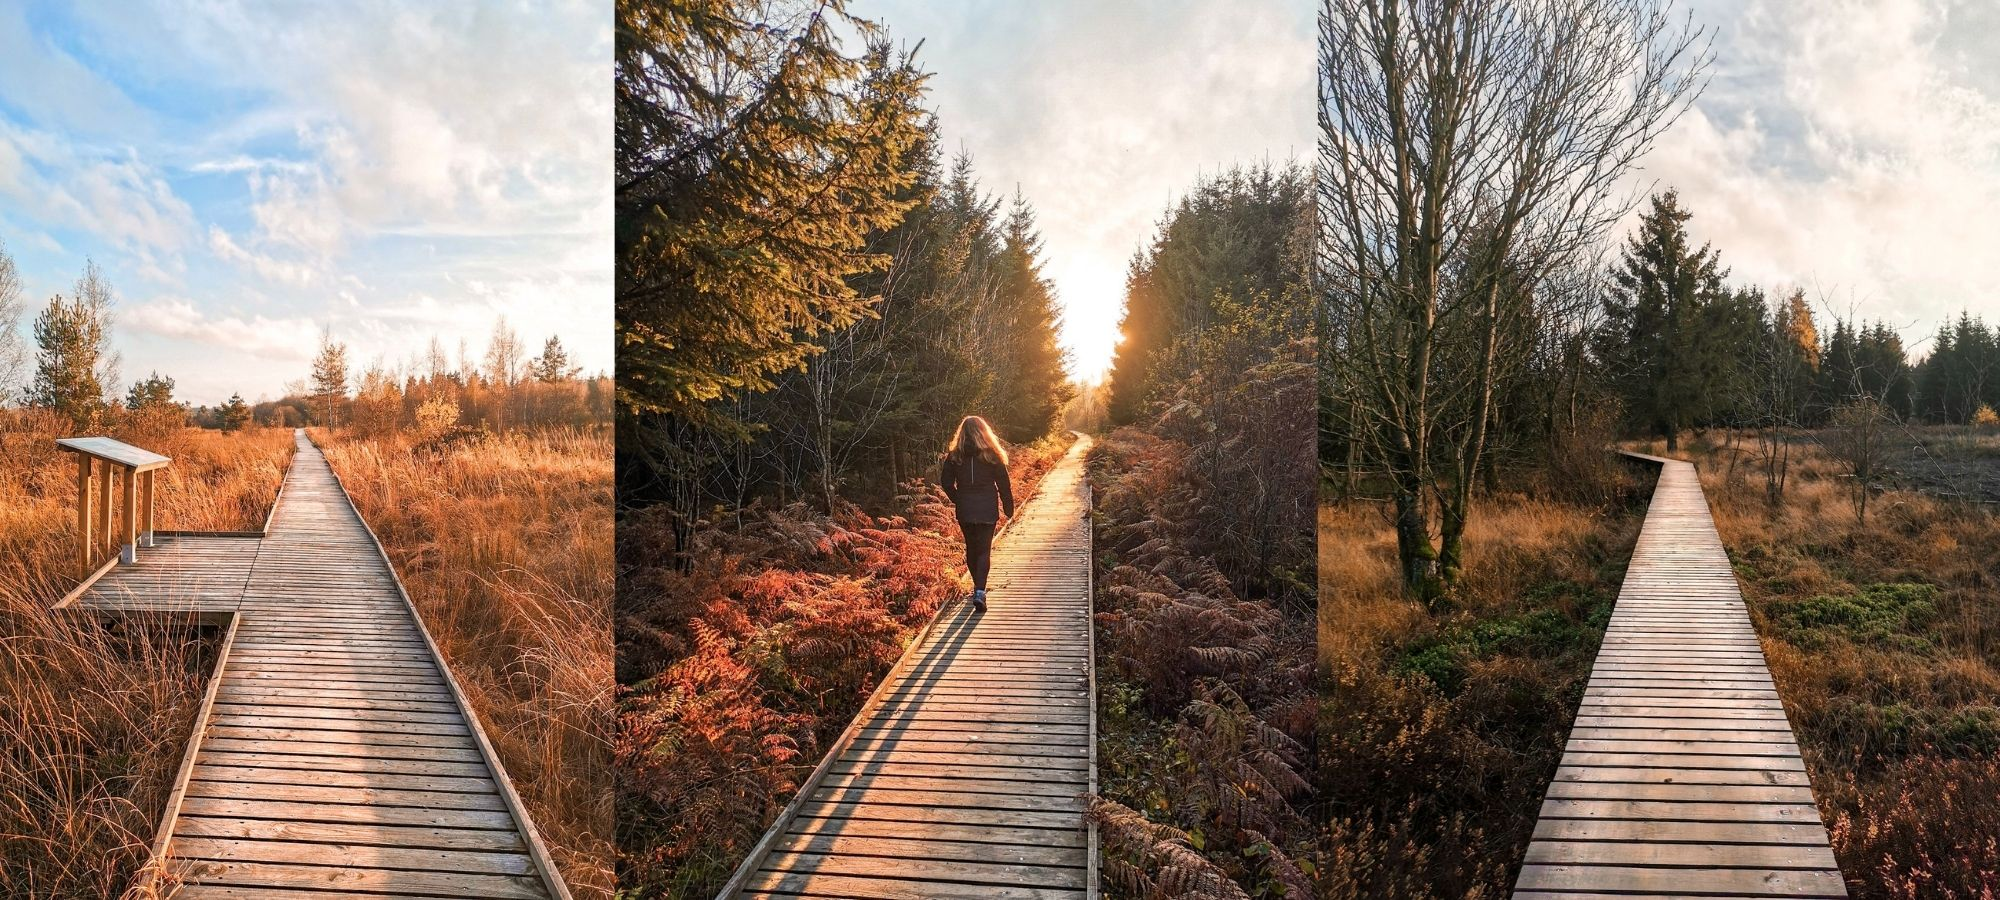 Woman walking on a wooden walkway ong Fagne Sacrawe in the autumn